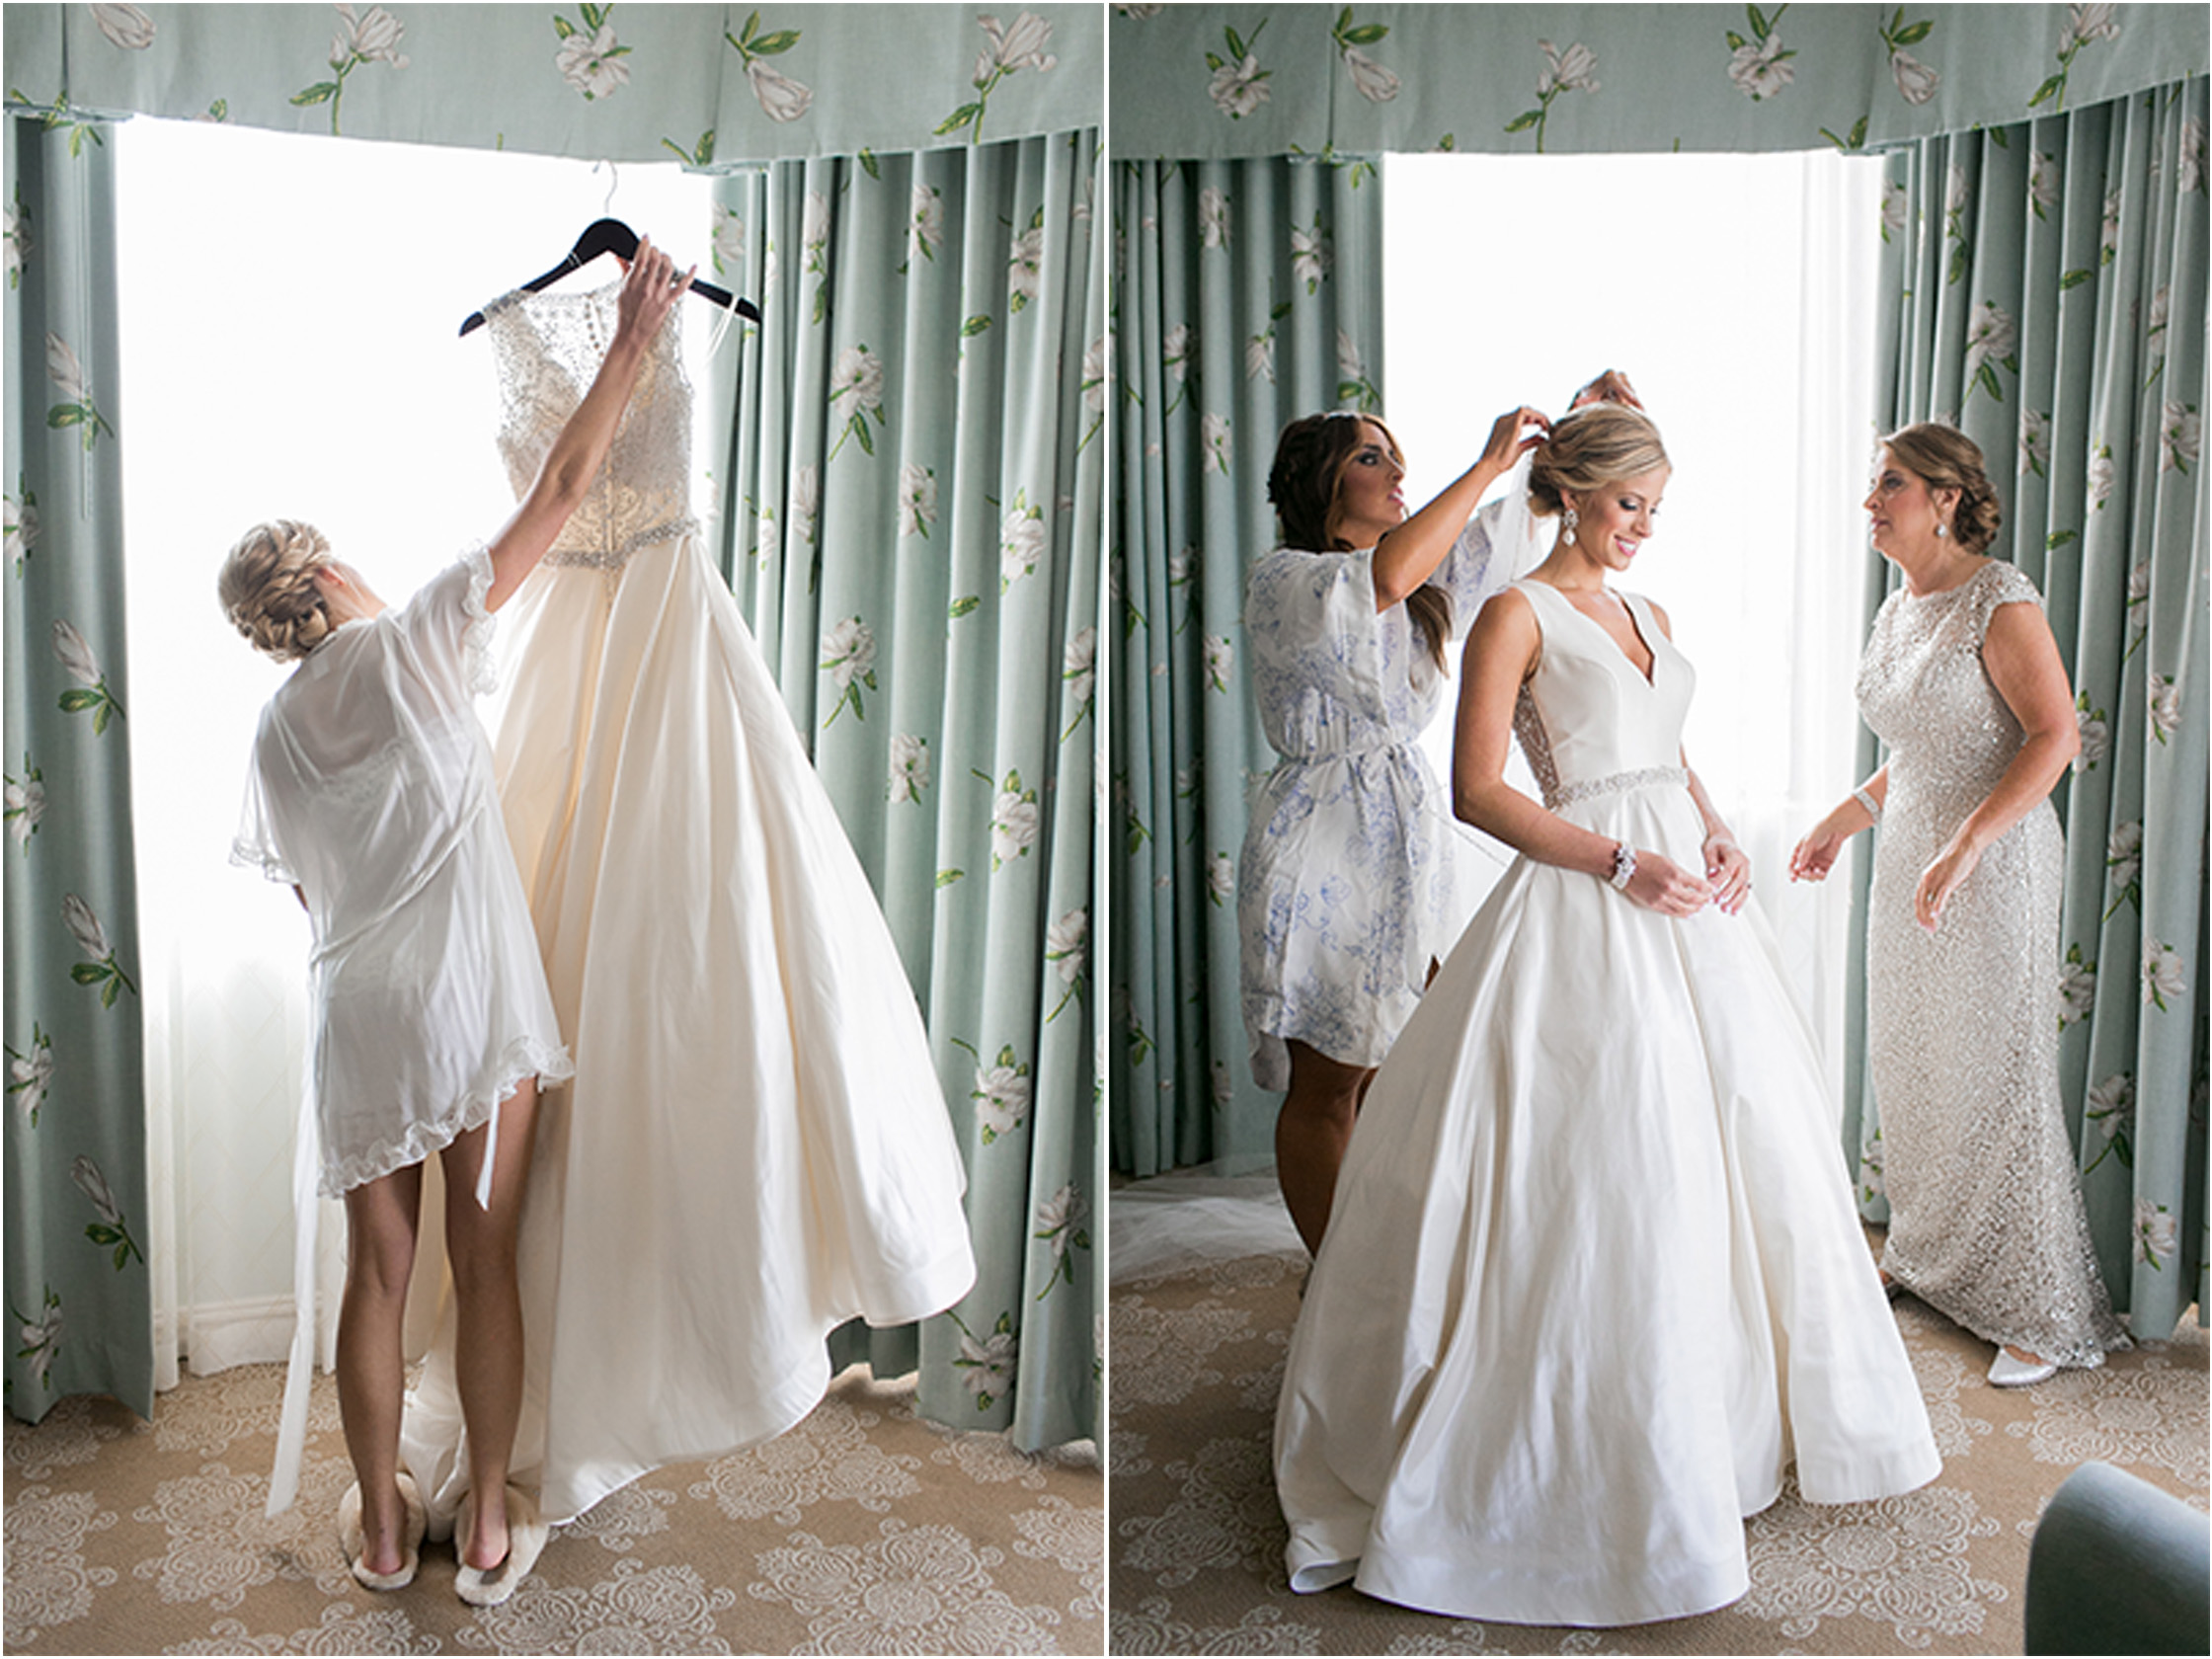 brides mother helping bride to dress